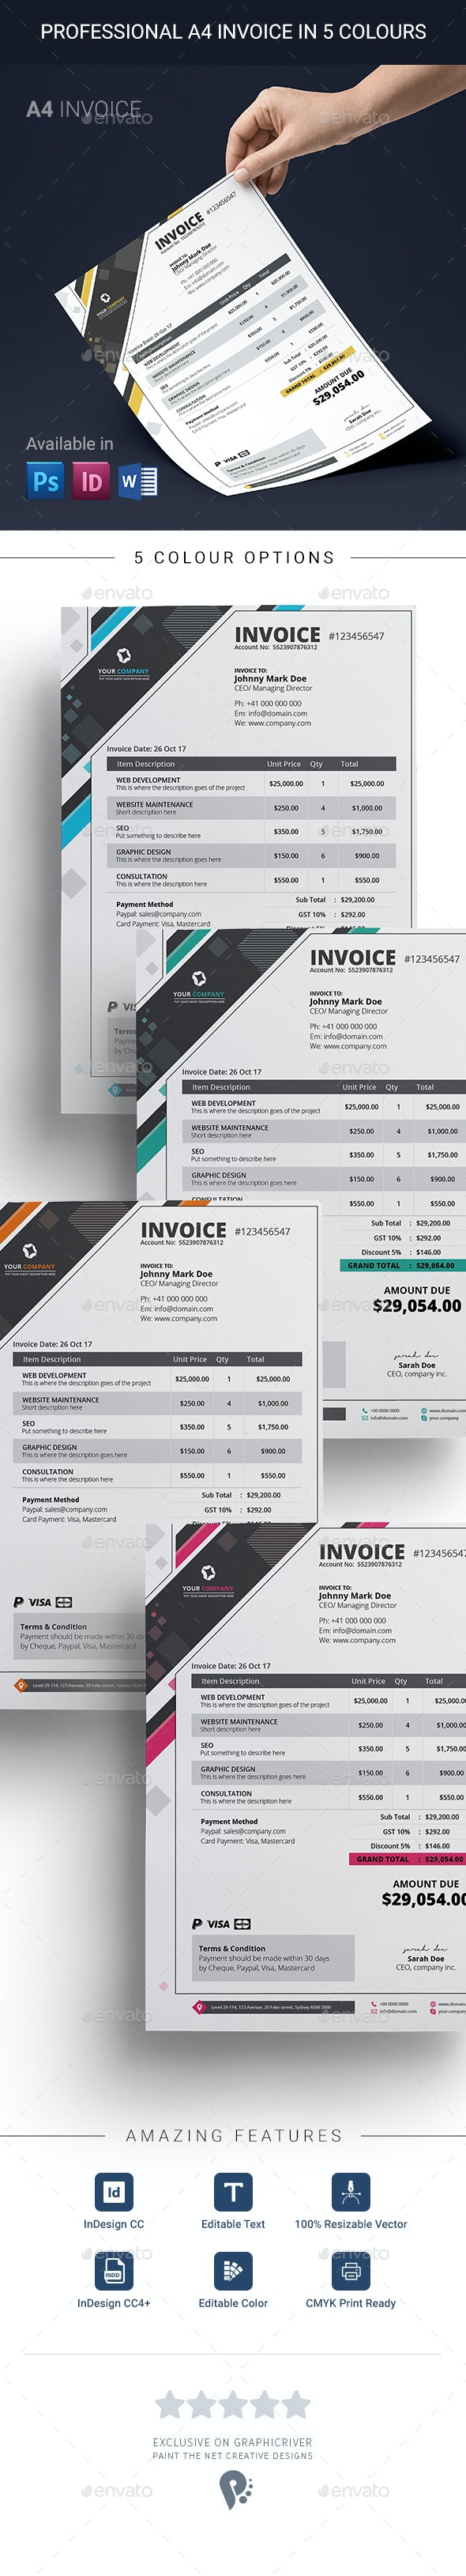 Modern Multi-purpose Professional A4 Invoice Template - Proposals & Invoices Stationery